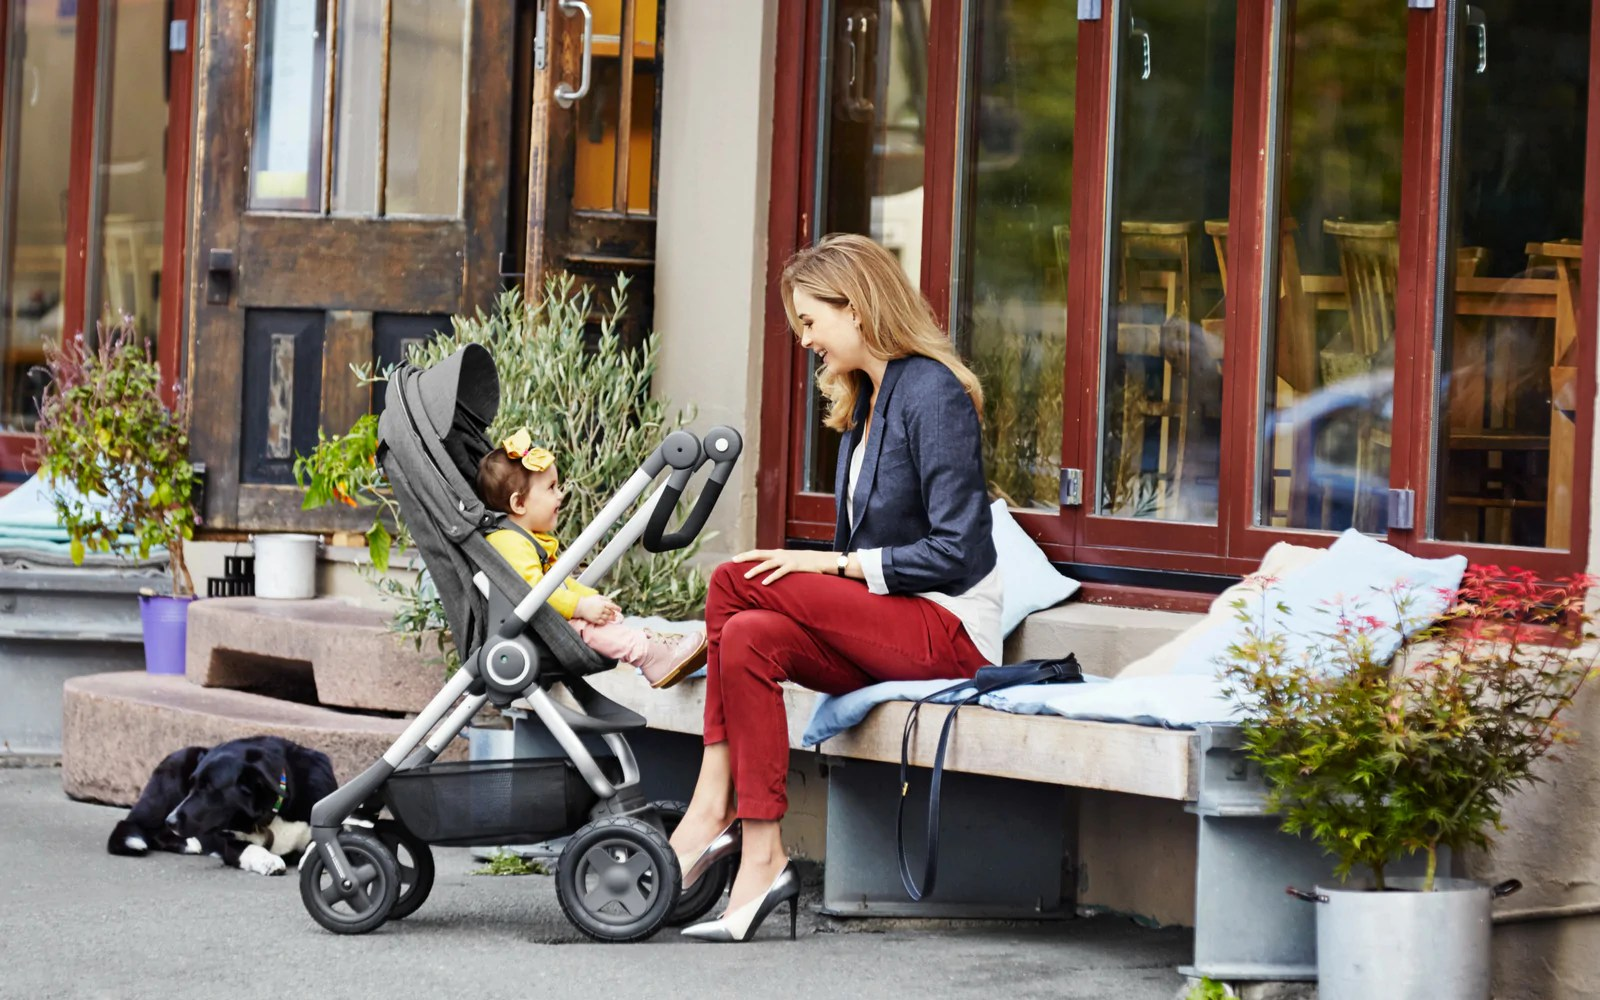 Stokke Maxi Cosi Car Seat Infant Car Seats Compatible With Stokke Scoot Stroller